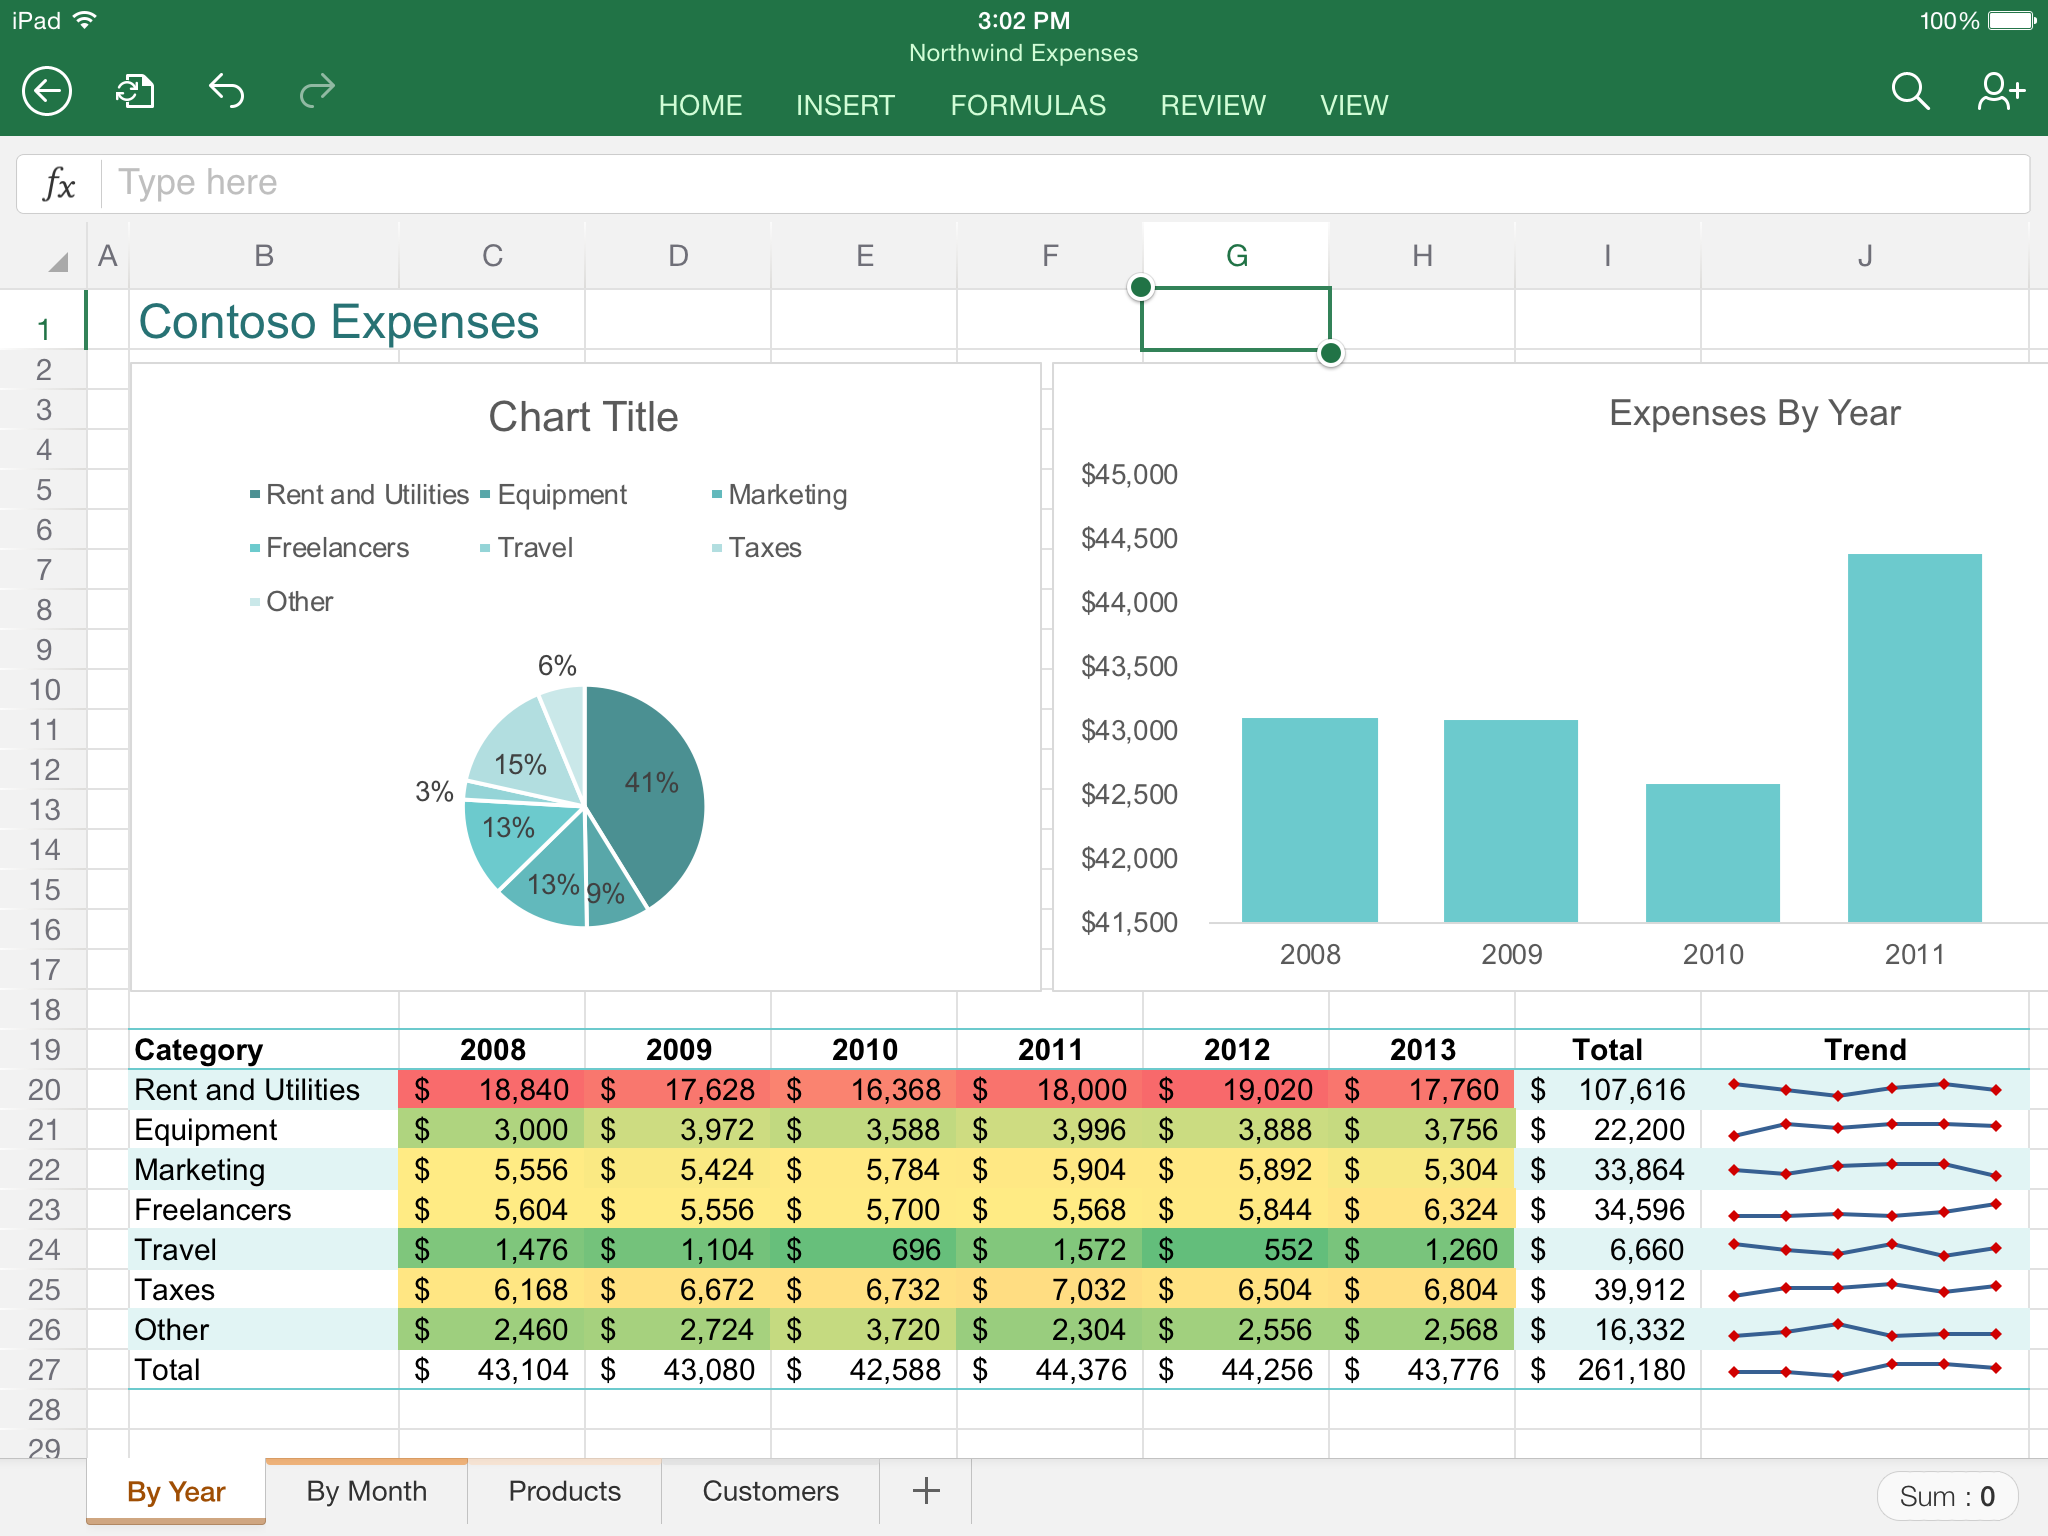 Ediblewildsus  Personable App Highlight Excel  Mobile Digital Now With Gorgeous Excel In Action With Cute Excel String Length Also Excel Repair Tool In Addition Excel Find Replace And Cell References In Excel As Well As Excel Vba Progress Bar Additionally Excel Energy Colorado From Youstonybrookedu With Ediblewildsus  Gorgeous App Highlight Excel  Mobile Digital Now With Cute Excel In Action And Personable Excel String Length Also Excel Repair Tool In Addition Excel Find Replace From Youstonybrookedu